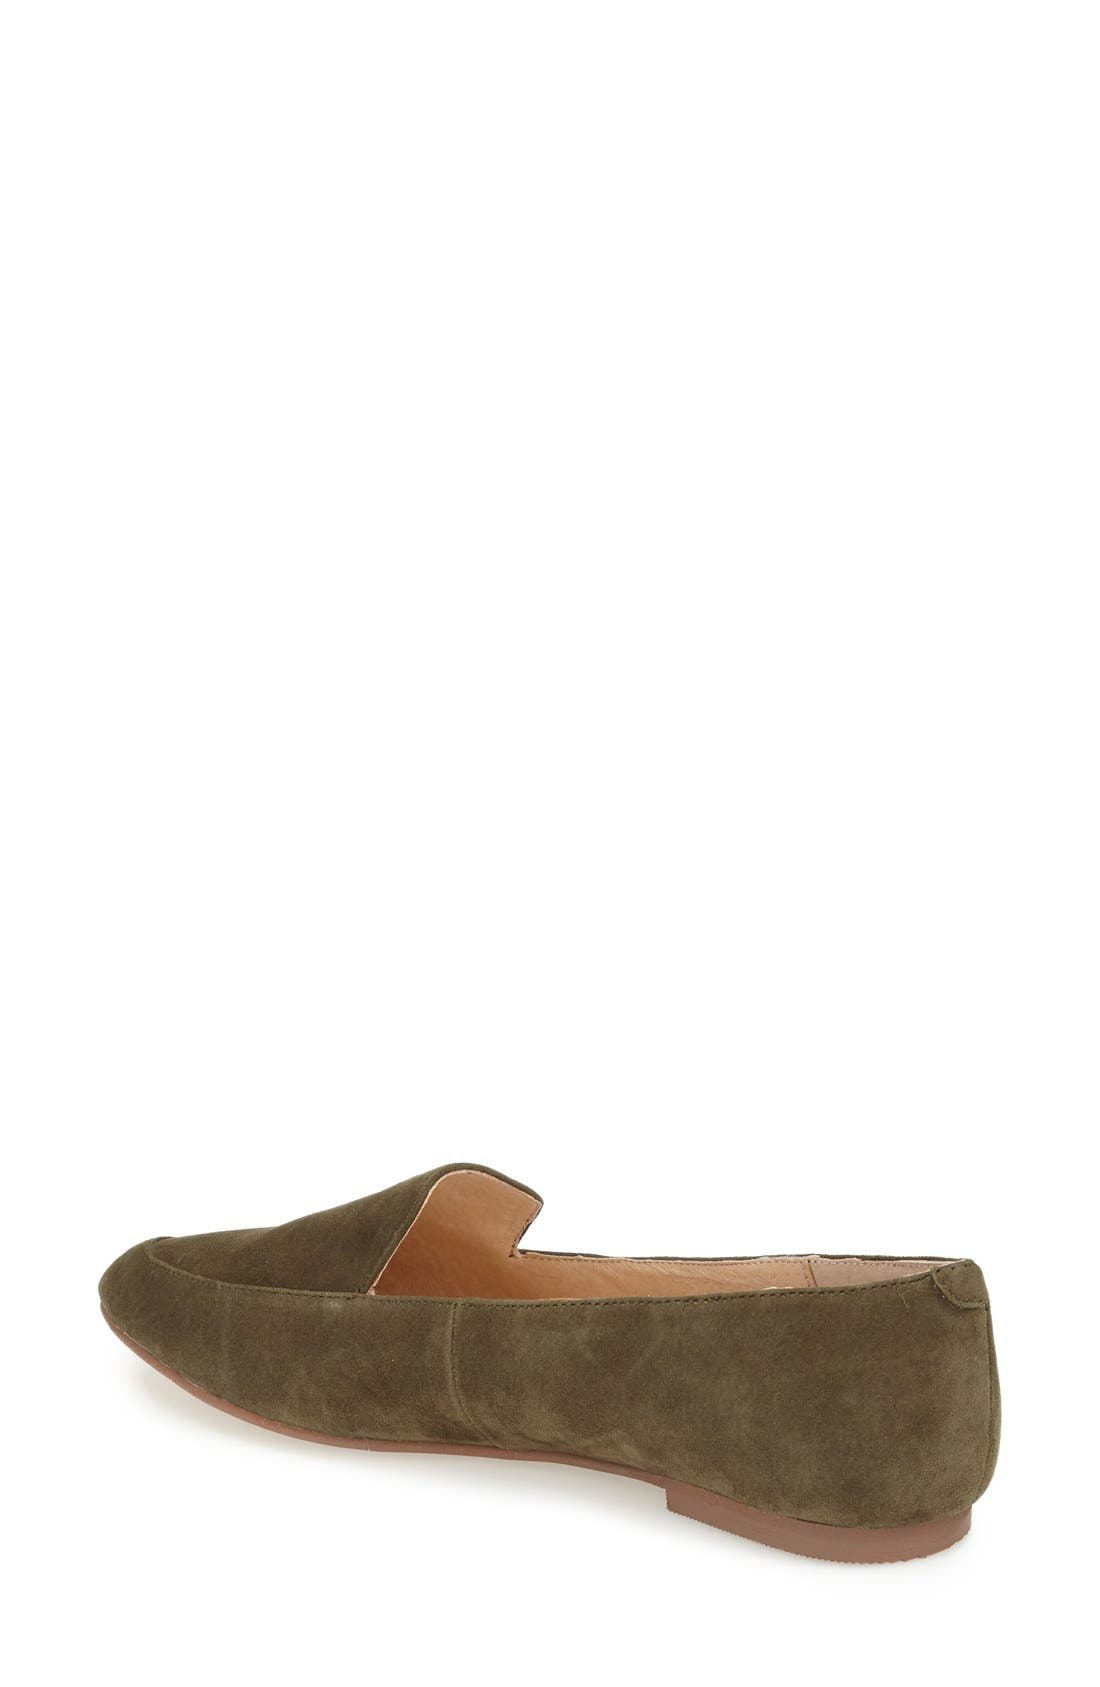 'Chandy' Loafer,                             Alternate thumbnail 2, color,                             Olive Suede